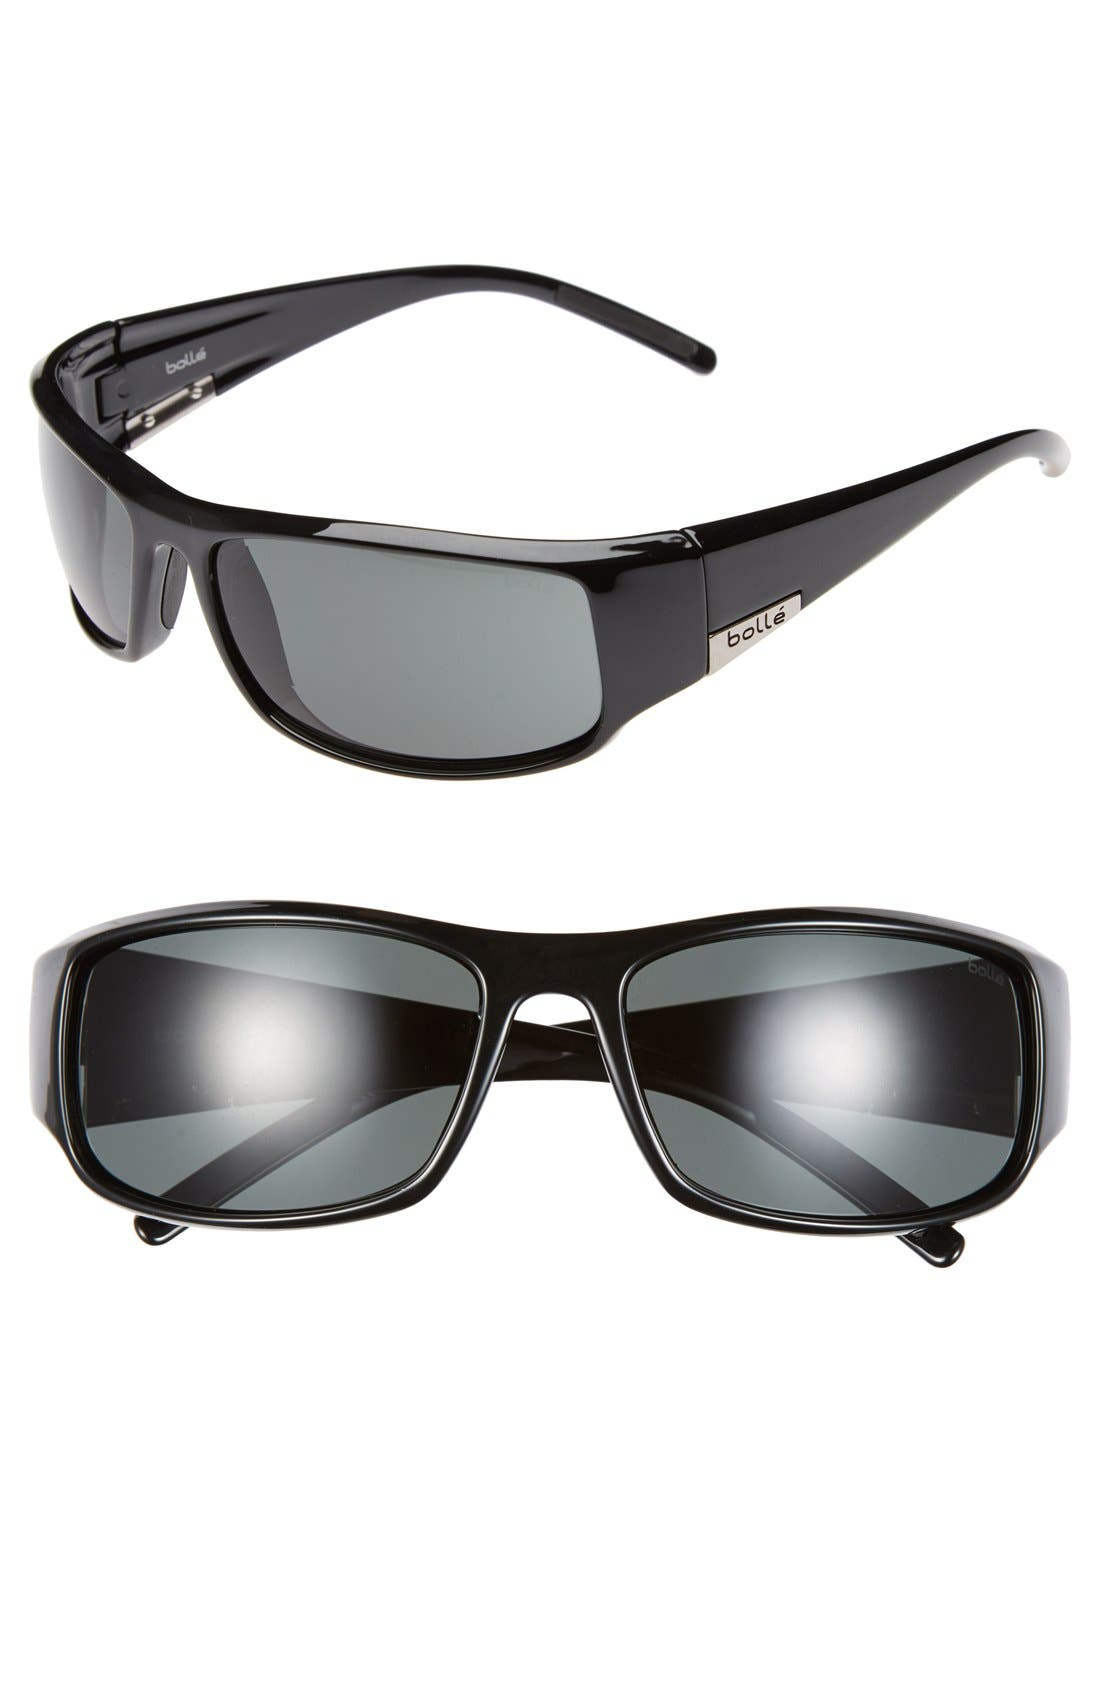 Main Image - Bolle 'King' 63mm Sport Sunglasses